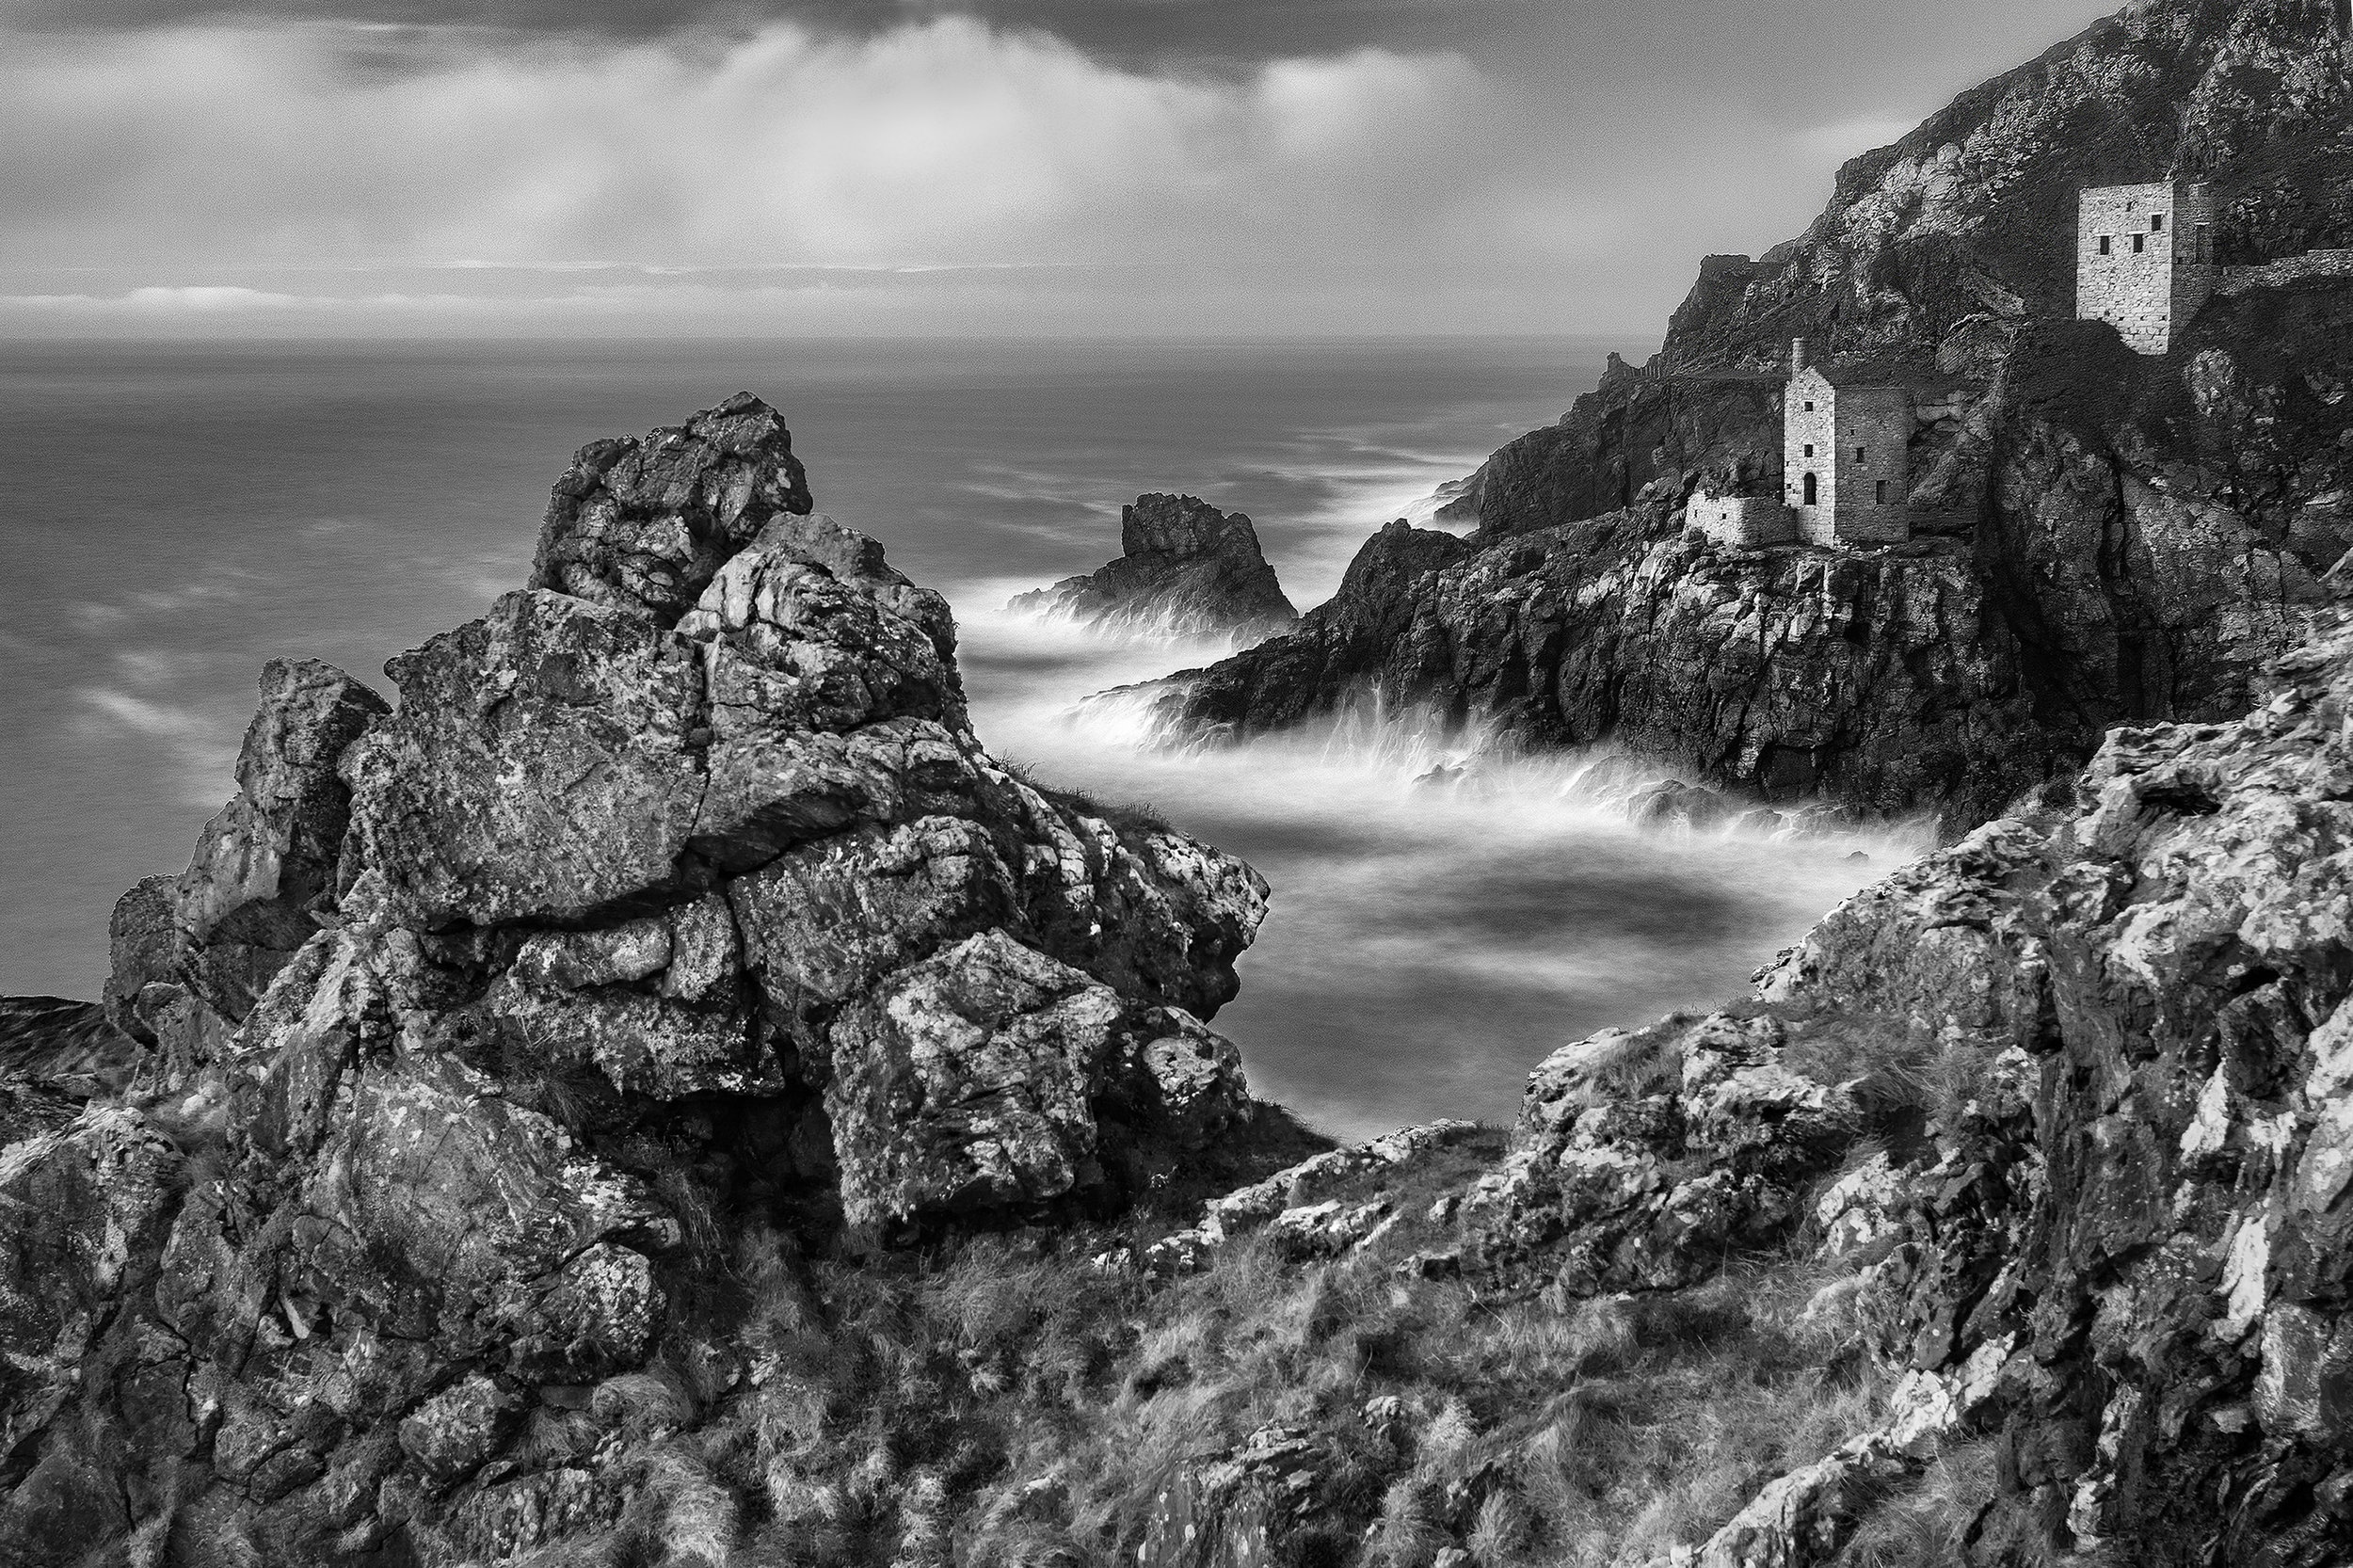 The winning image of the calm before the storm at Botallack by Sophie Green